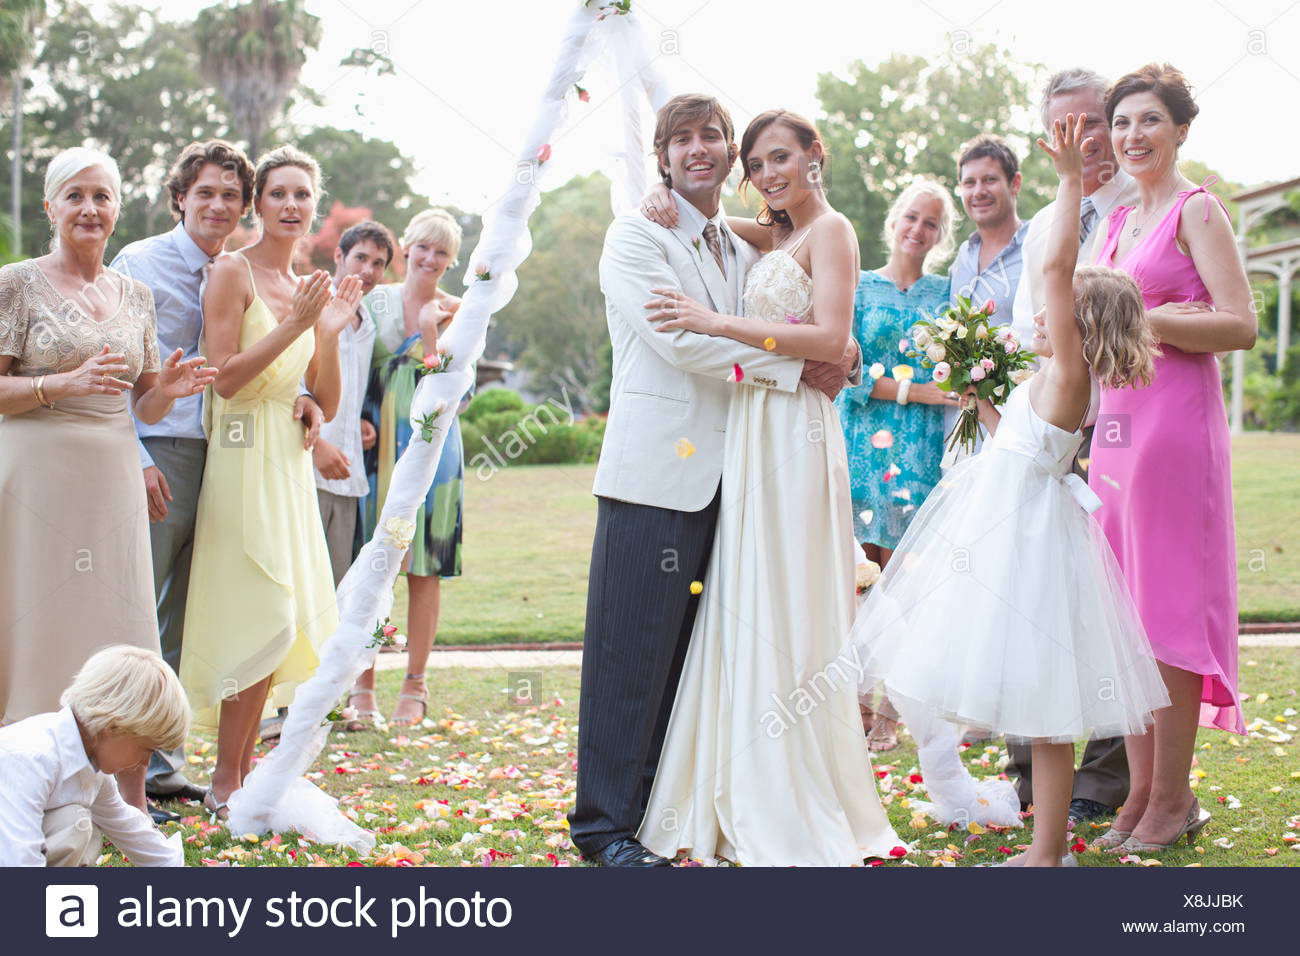 Guests with bride and groom smiling - Stock Image